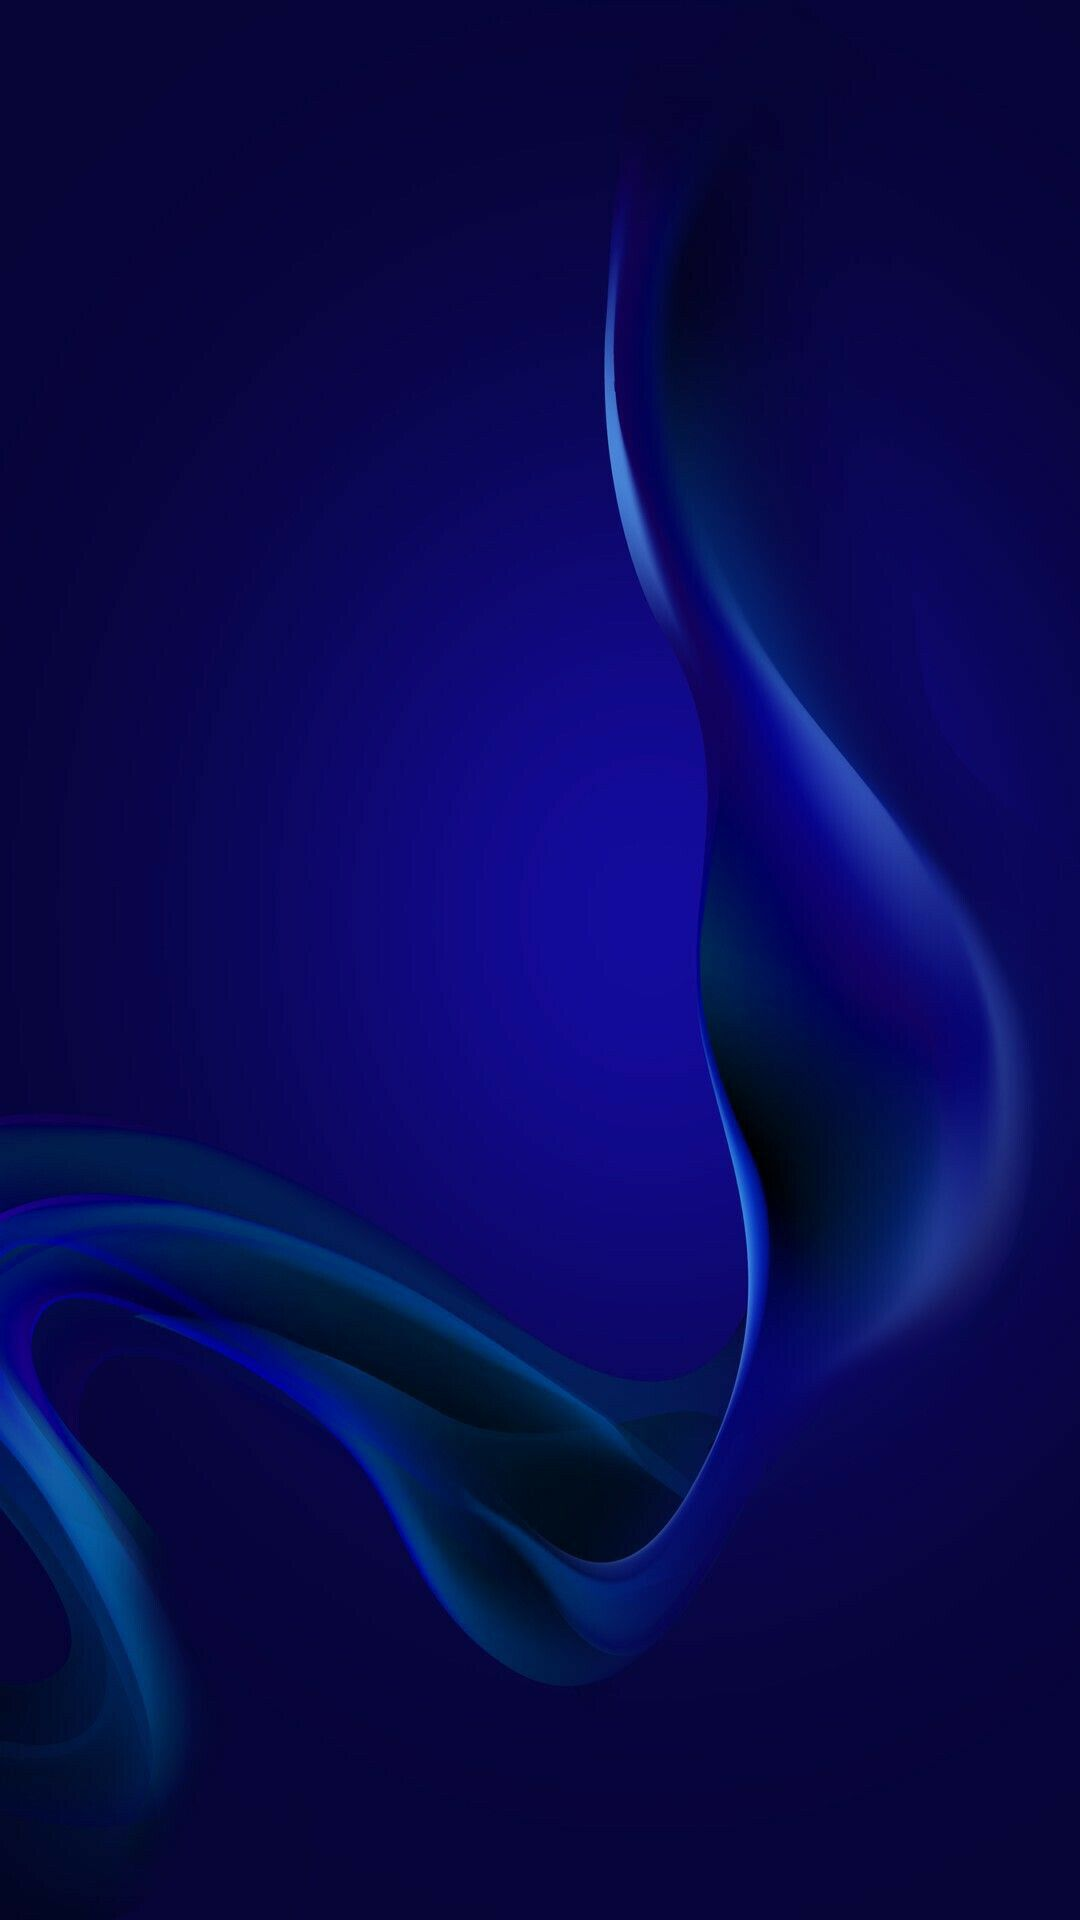 Wallpaper Of Vivid Blue Backgrounds Blue Wallpapers Hd Phone Wallpapers Royal Blue Wallpaper